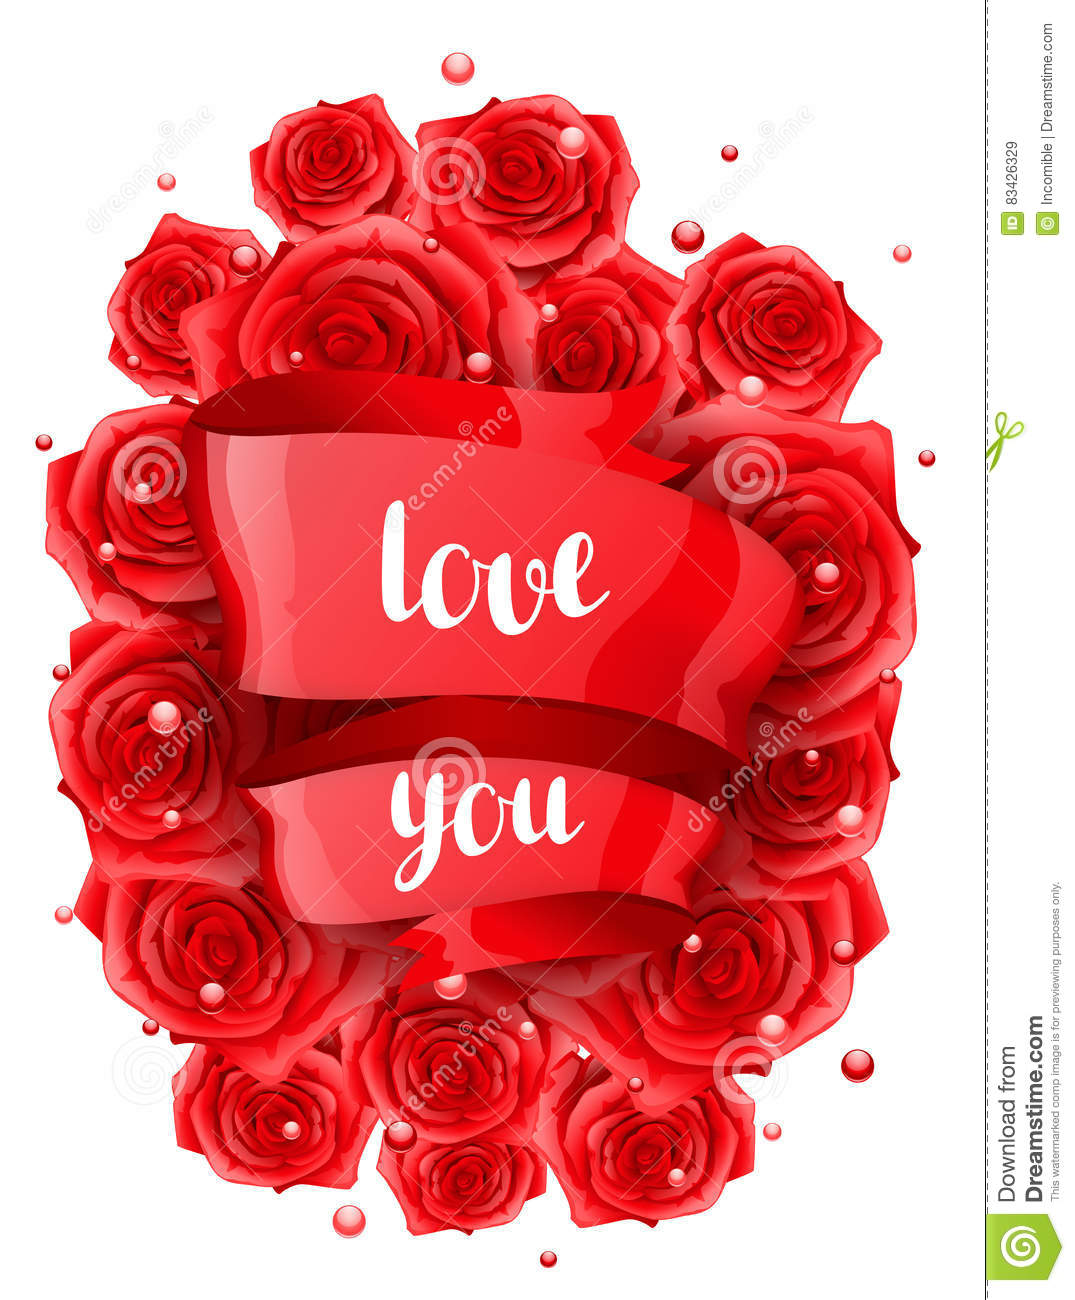 happy valentine day greeting card with red realistic roses stock, Ideas